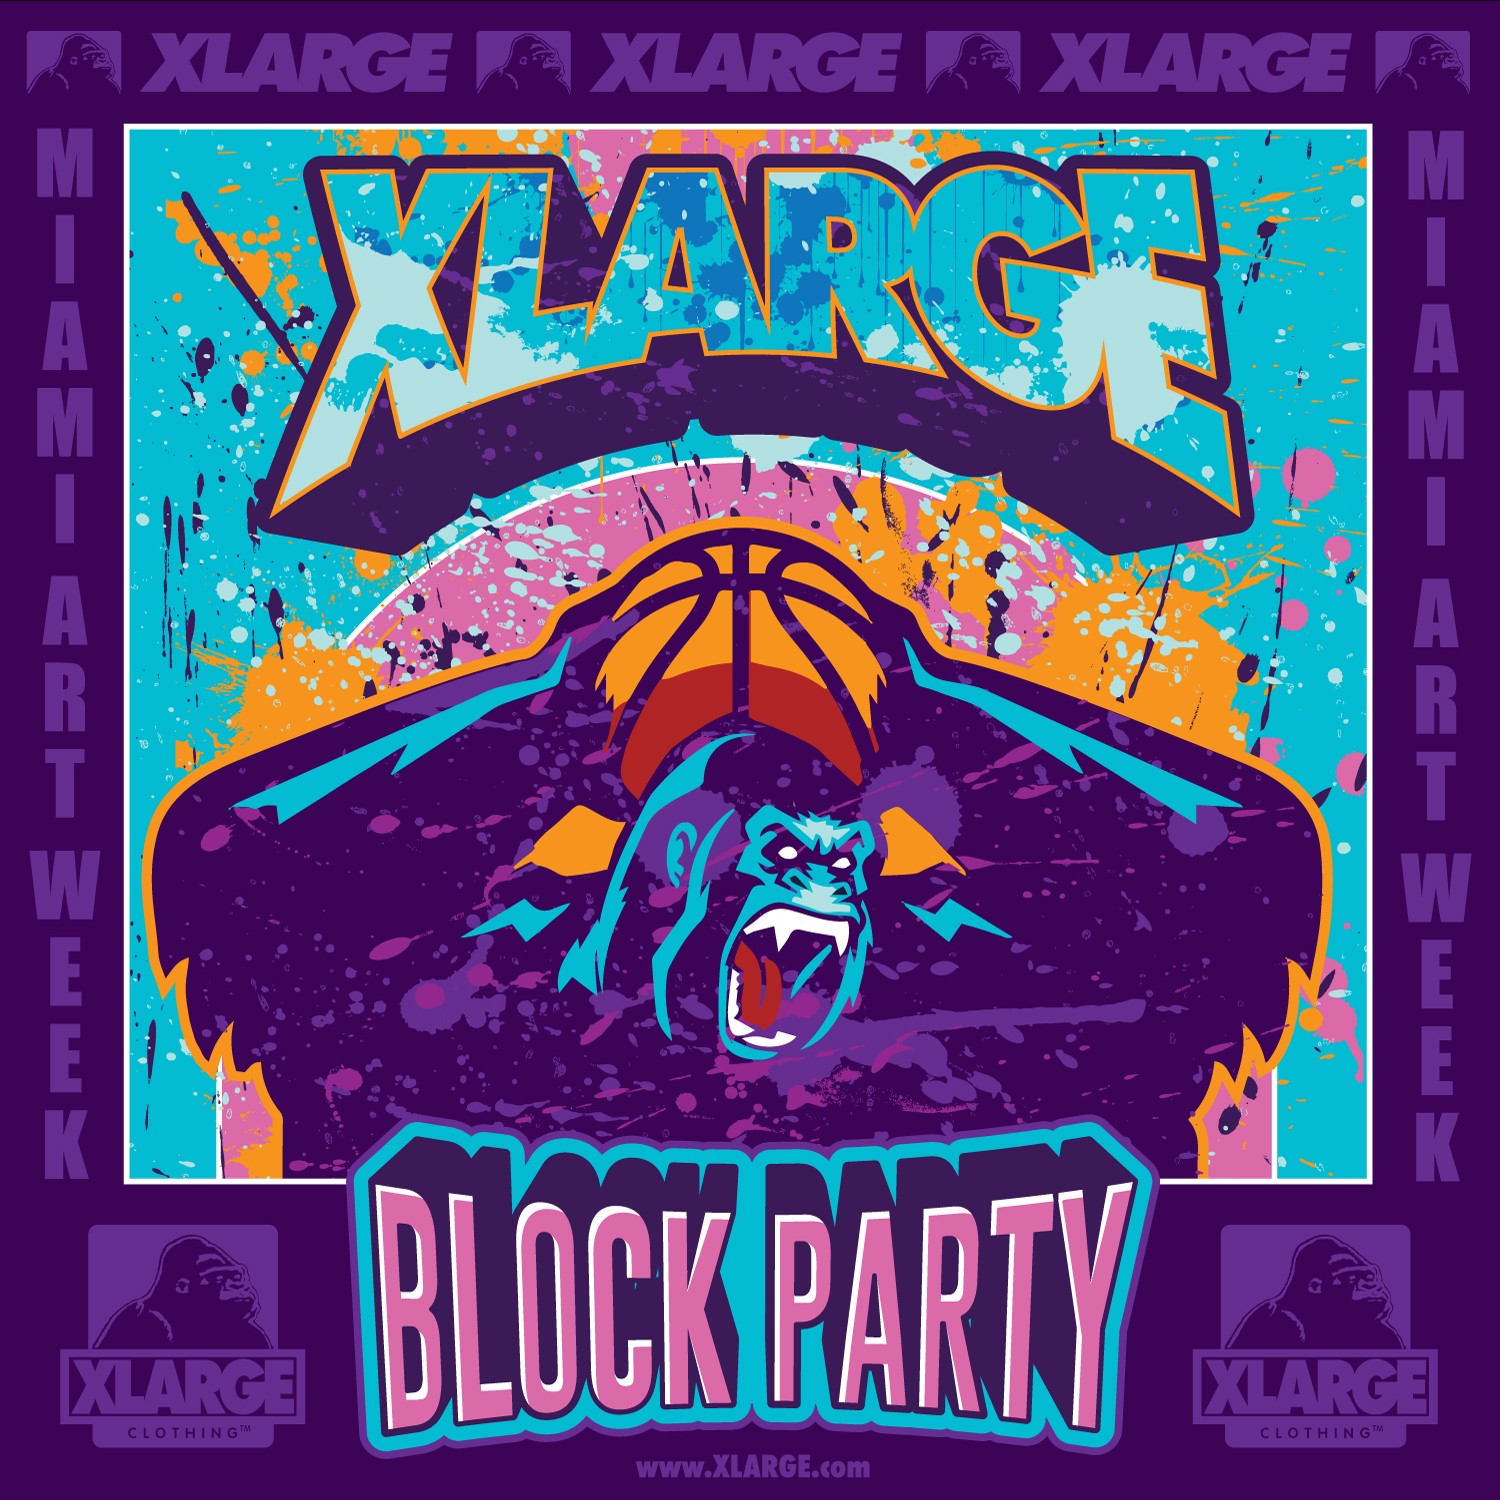 12.7. Sat XLARGE MIAMI ART WEEK